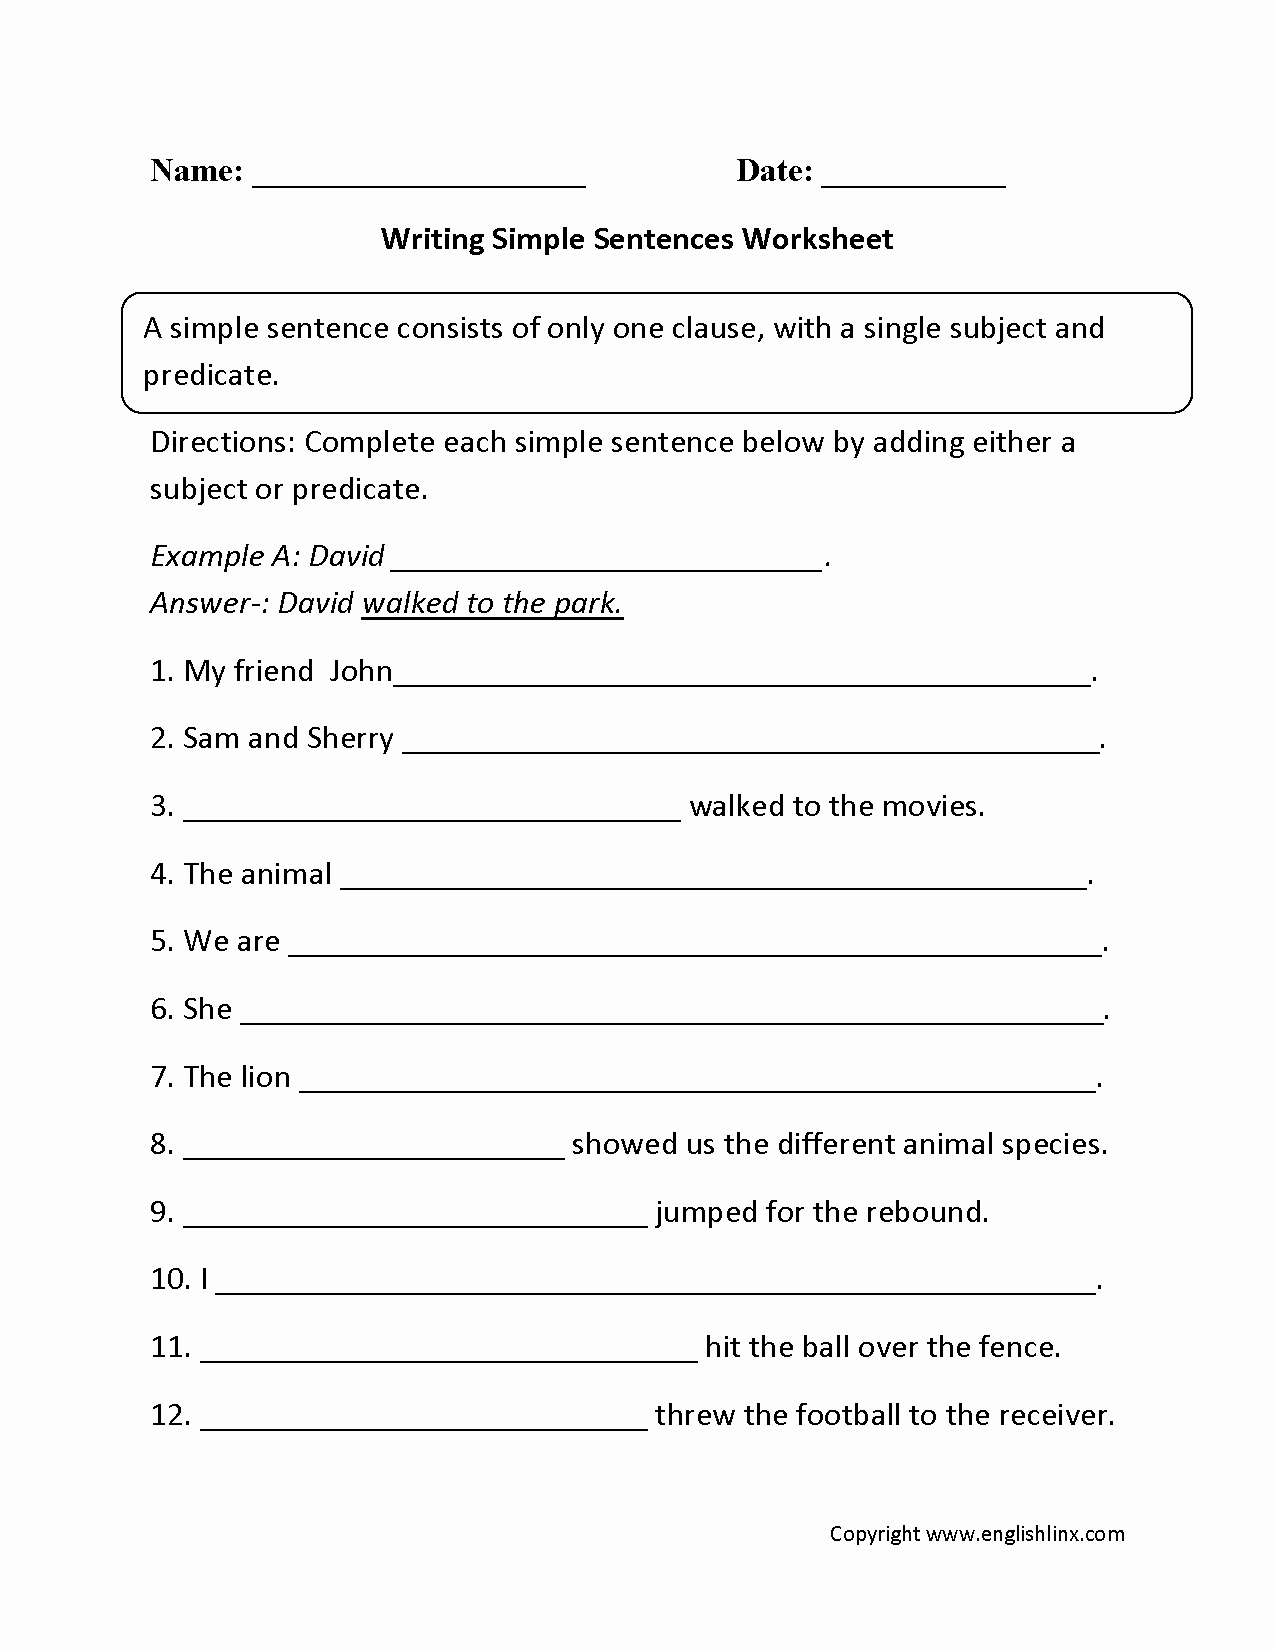 6th Grade Essay Writing Worksheets Best Of 6th Grade Writing Worksheets Printable Free